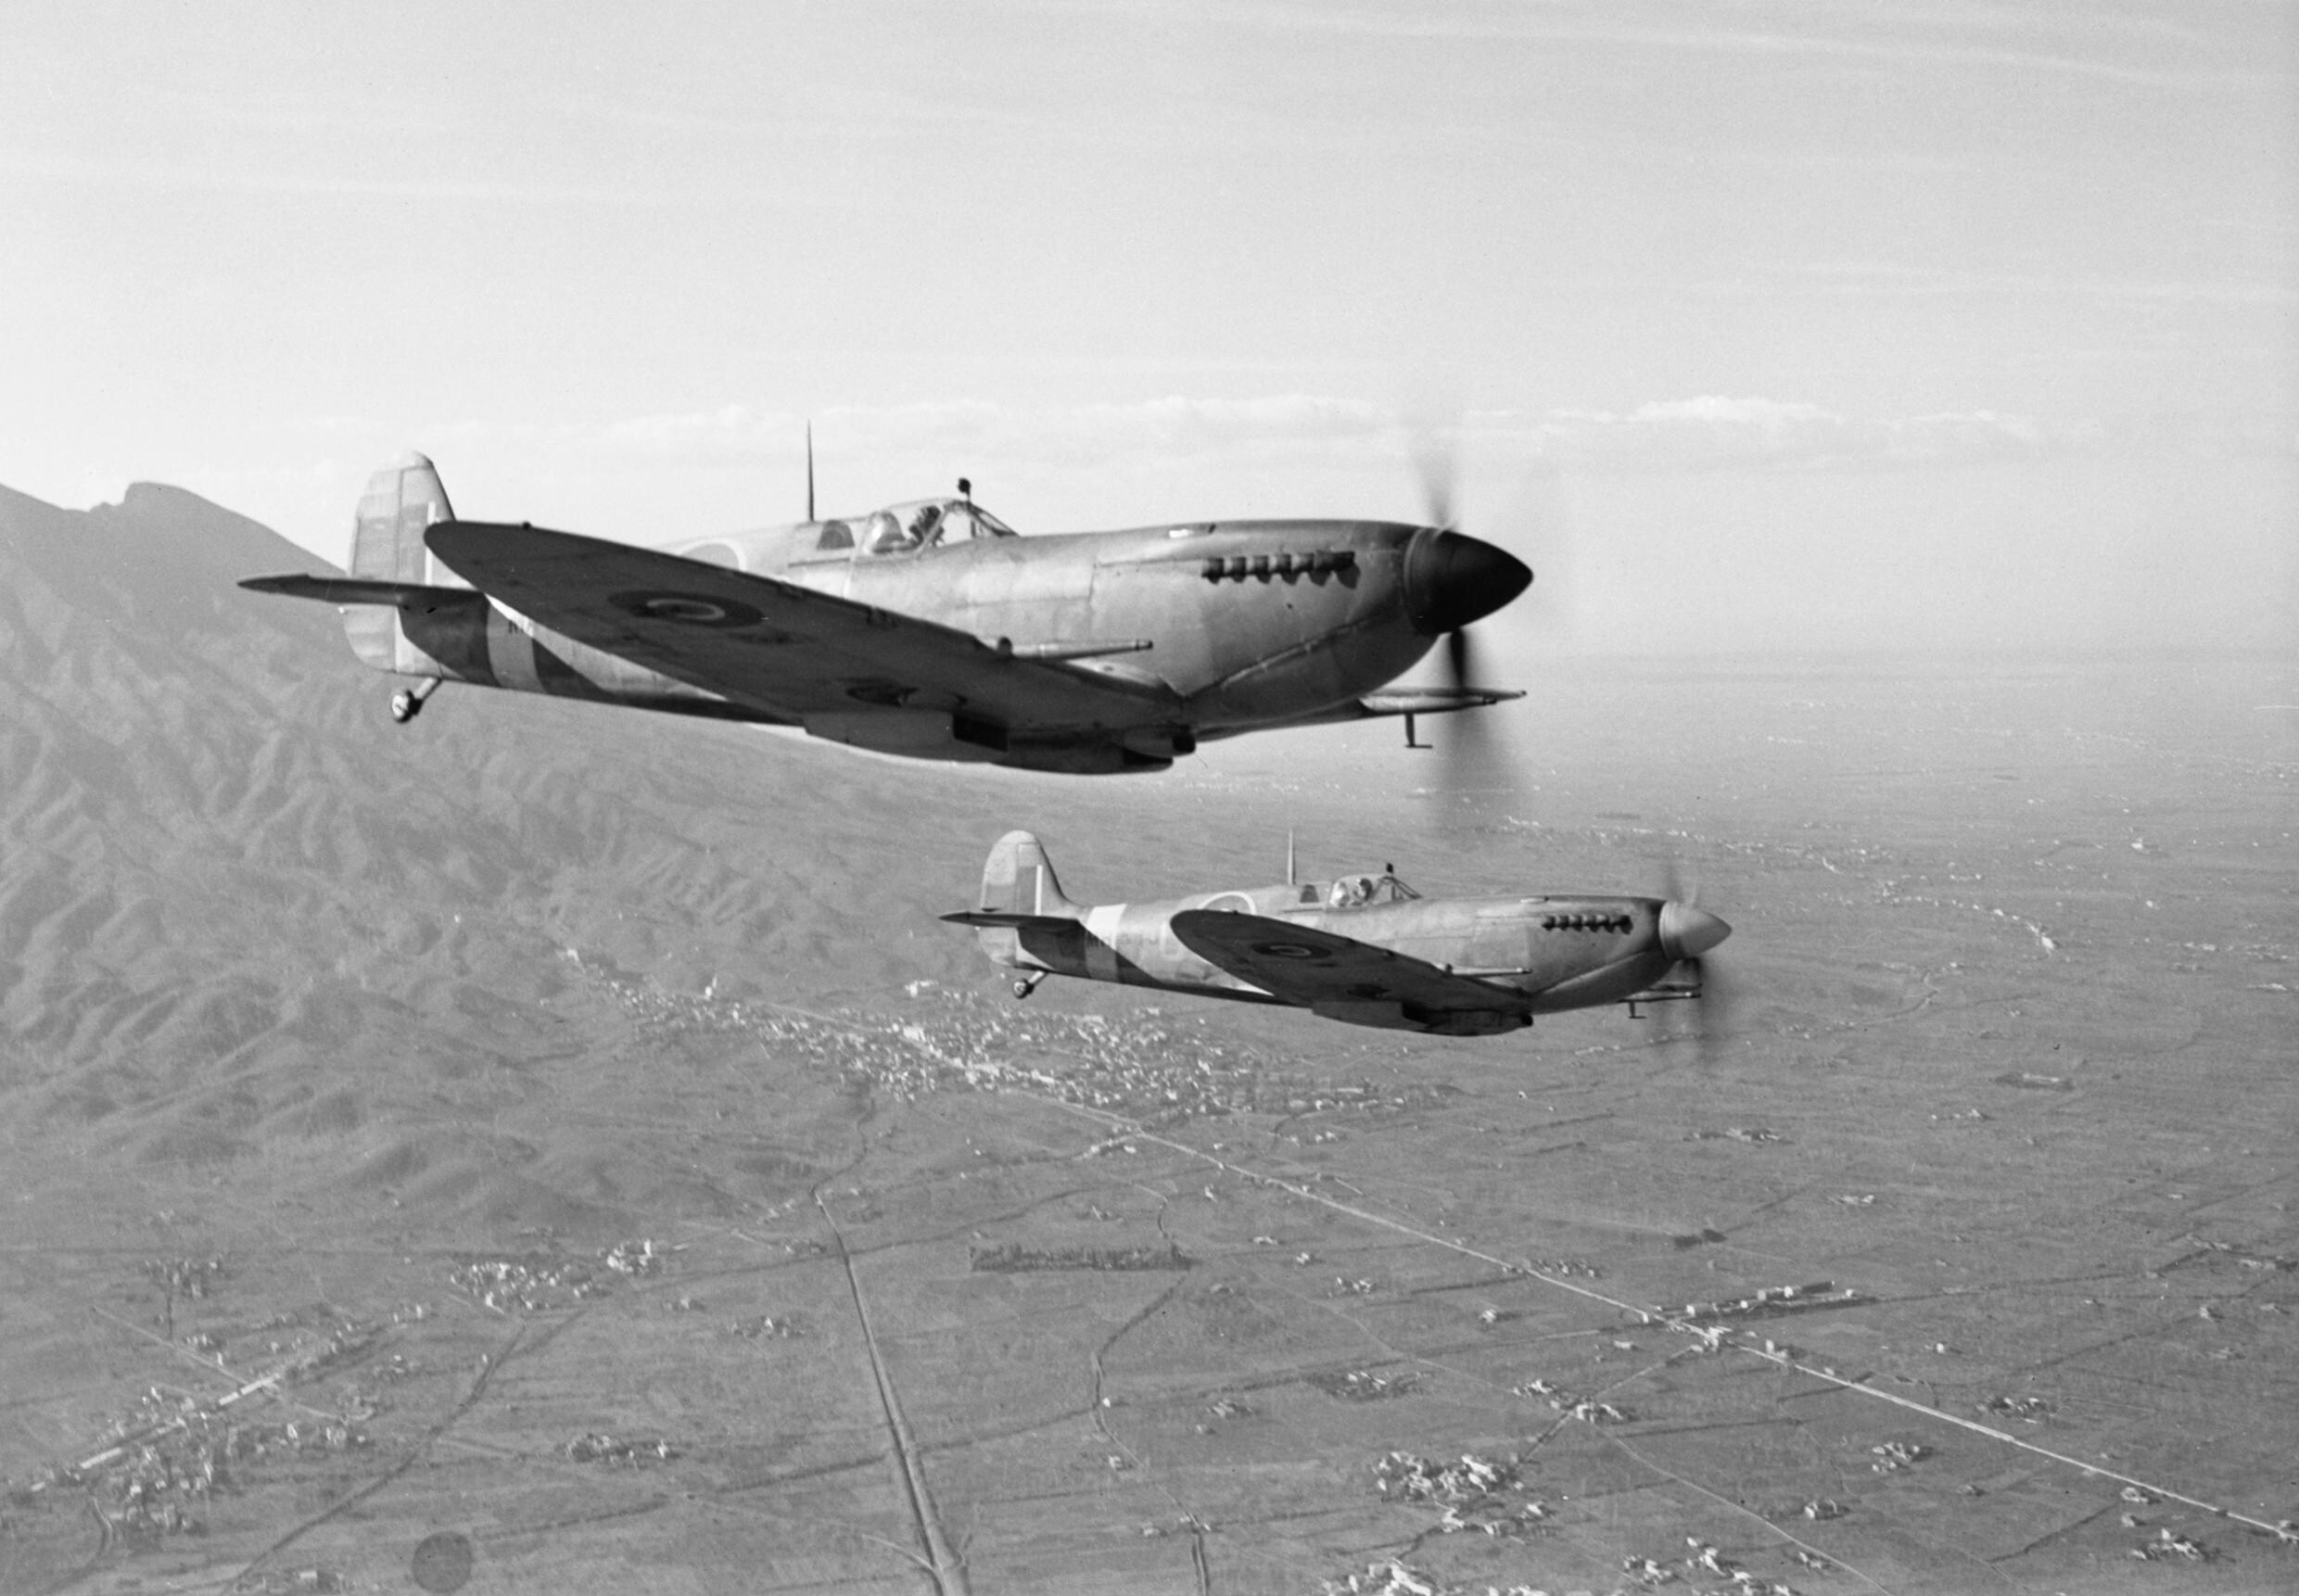 Supermarine Spitfire Mk IXs of No 241 Squadron RAF return to their base at Madna south east of Campomarino Italy after a weather reconnaissance sortie over the Anzio beachhead 29 January 1944 CNA2499